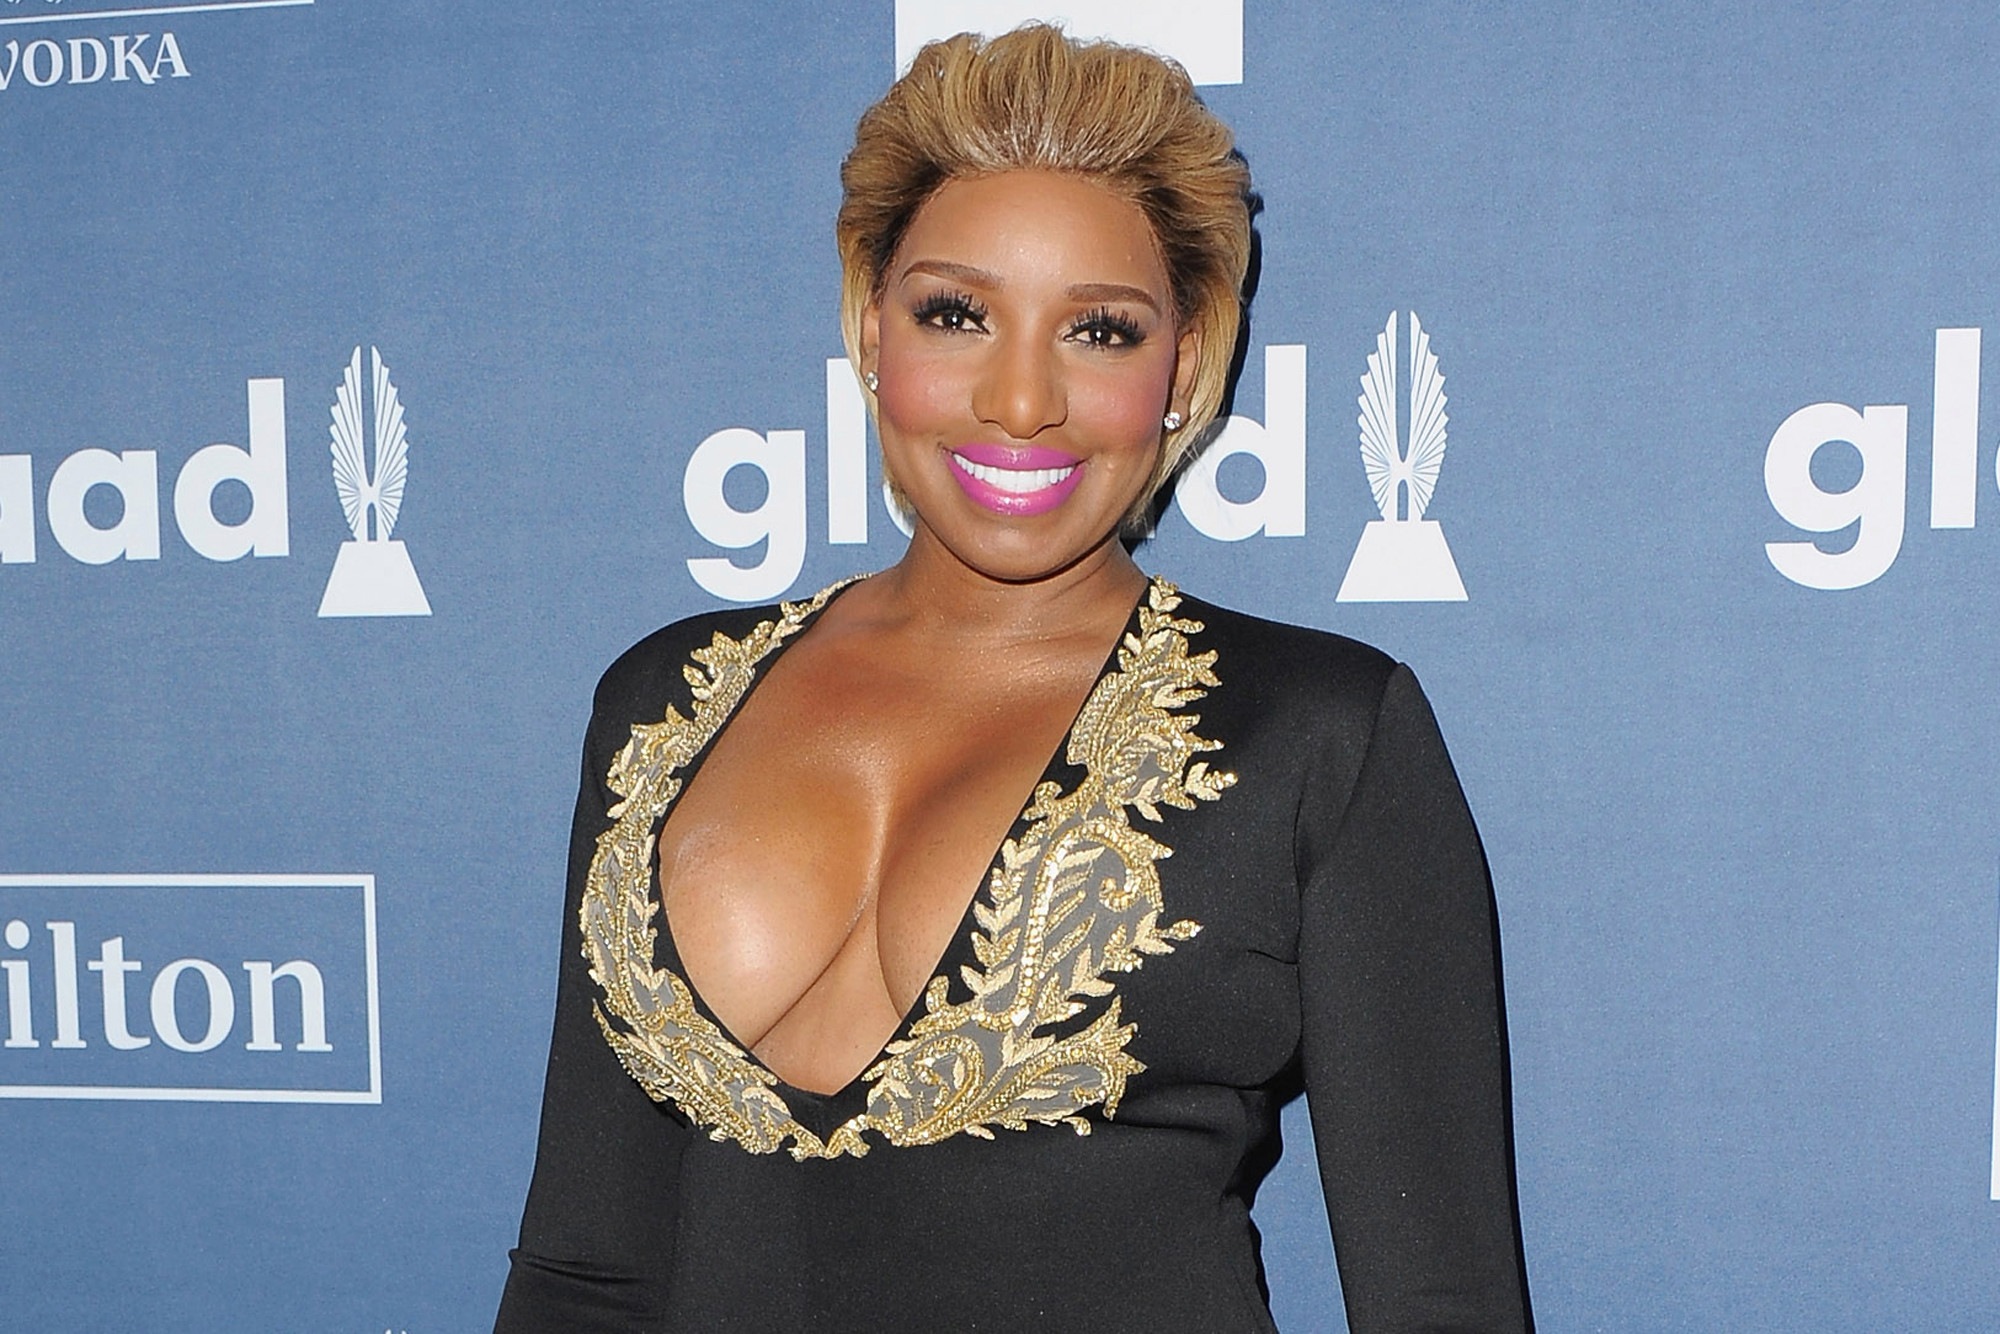 NeNe Leakes Spoke About Cancer At The Super Bowl Gospel Awards - Watch The Video